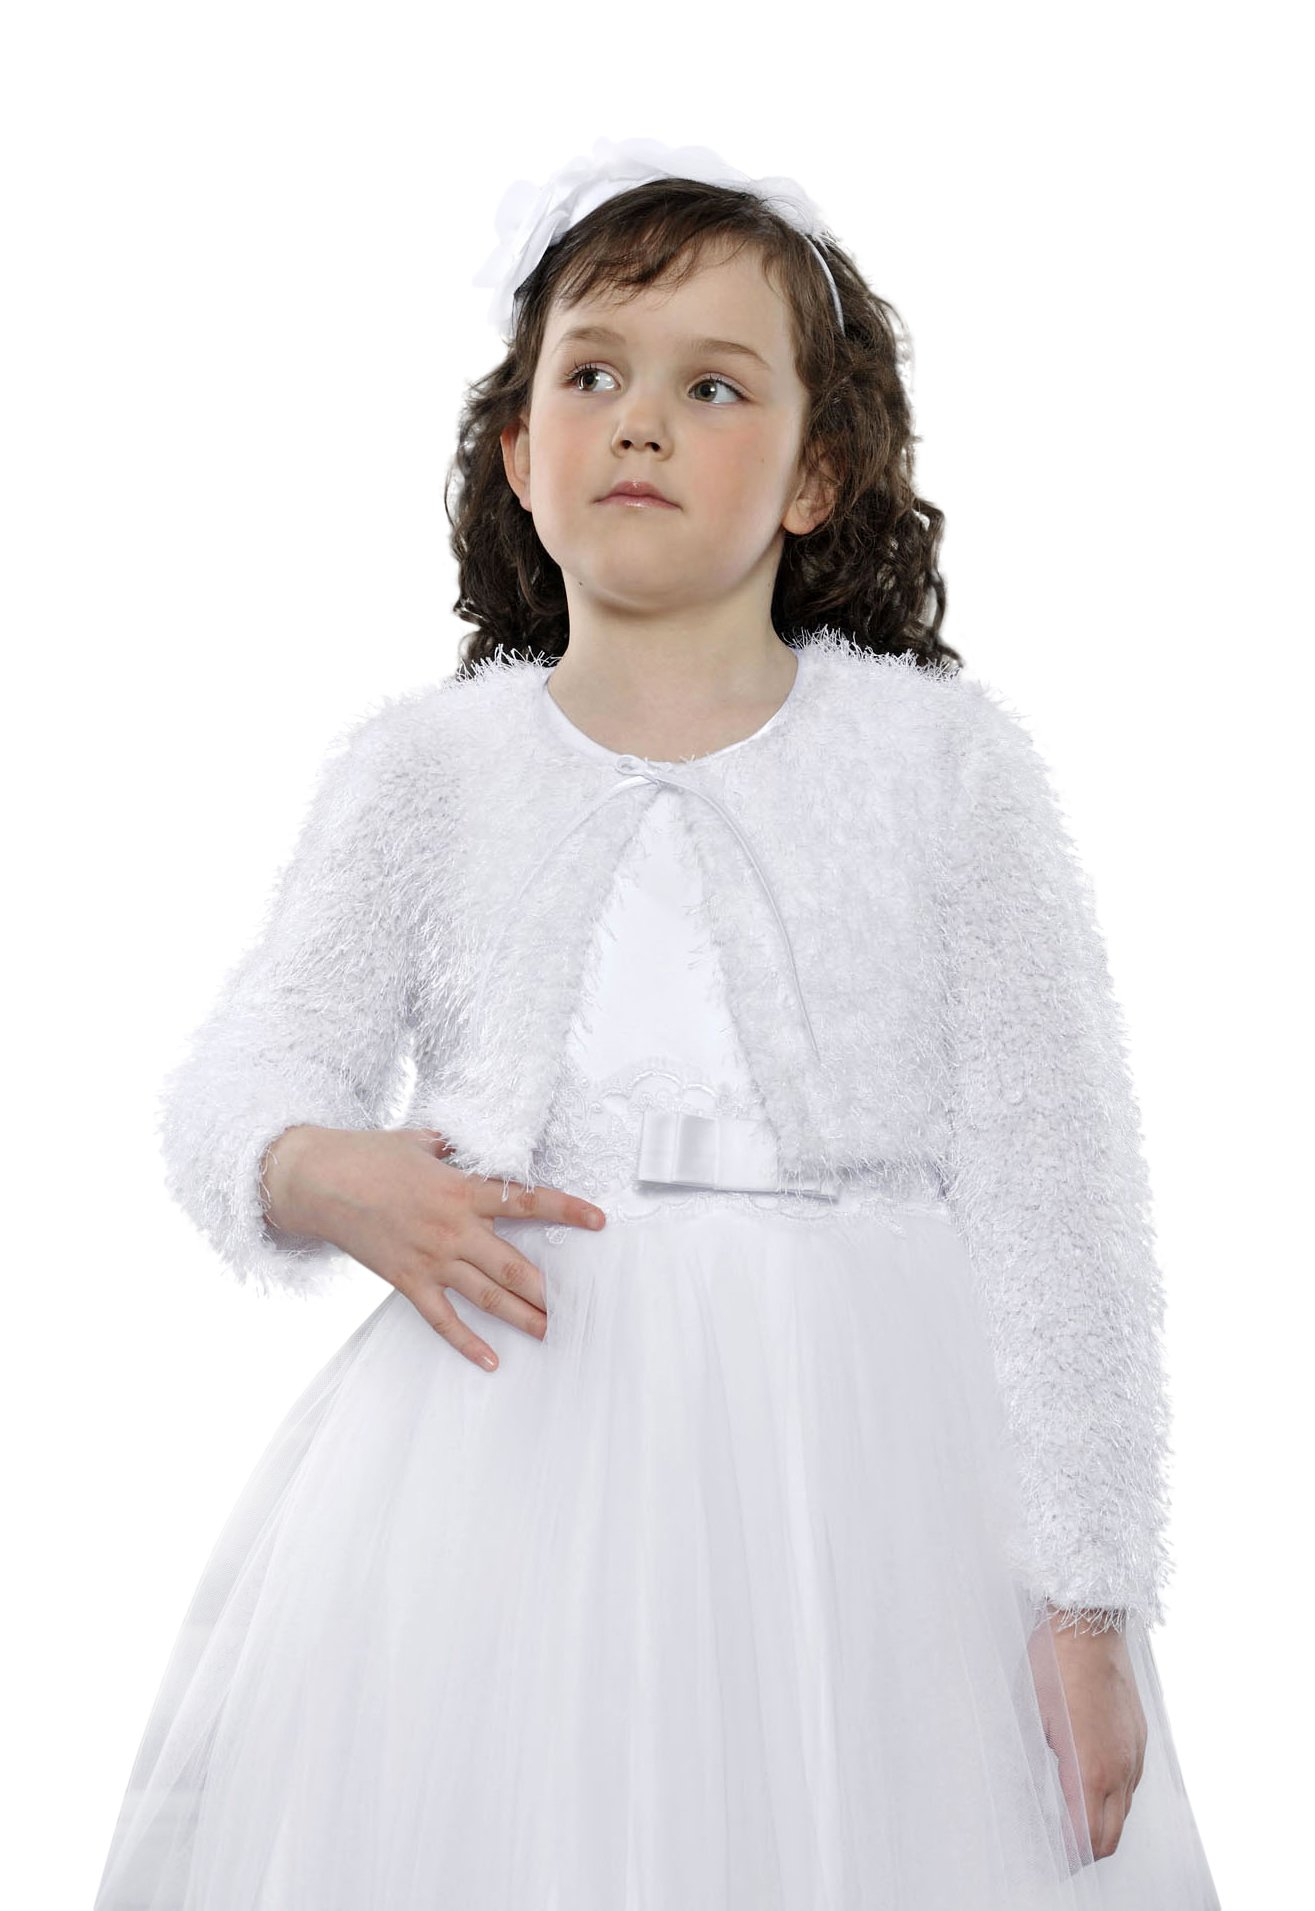 Flower Girls Wedding Communion Party Woven Fur Bolero Jacket Shrug Long Sleeve 7-12 Years